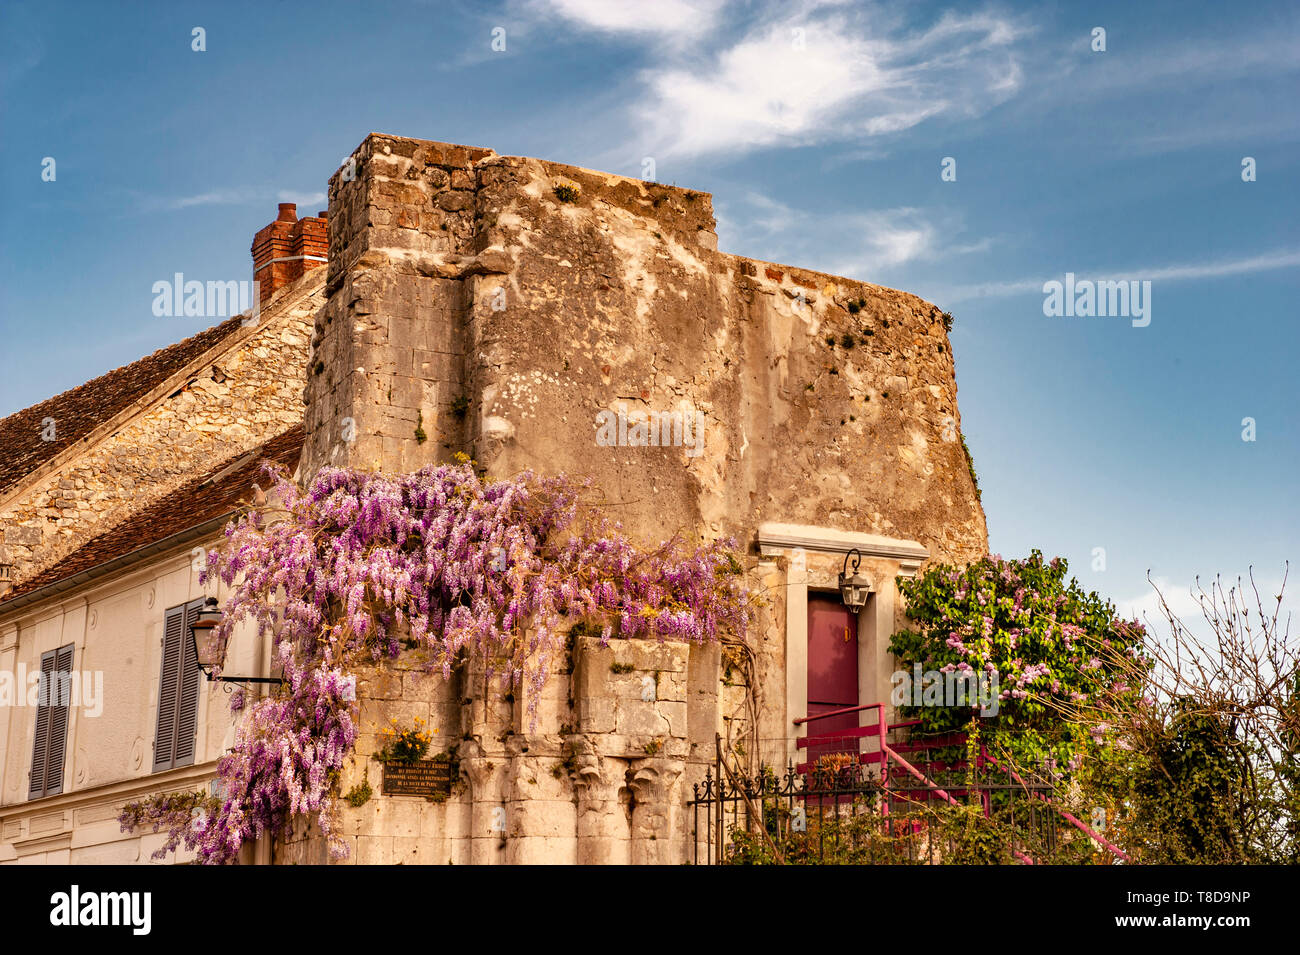 Wisteria blooming on the walls of the former church Saint-Thibaut and the adjacent house at Provins, Île-de-France, France - Stock Image